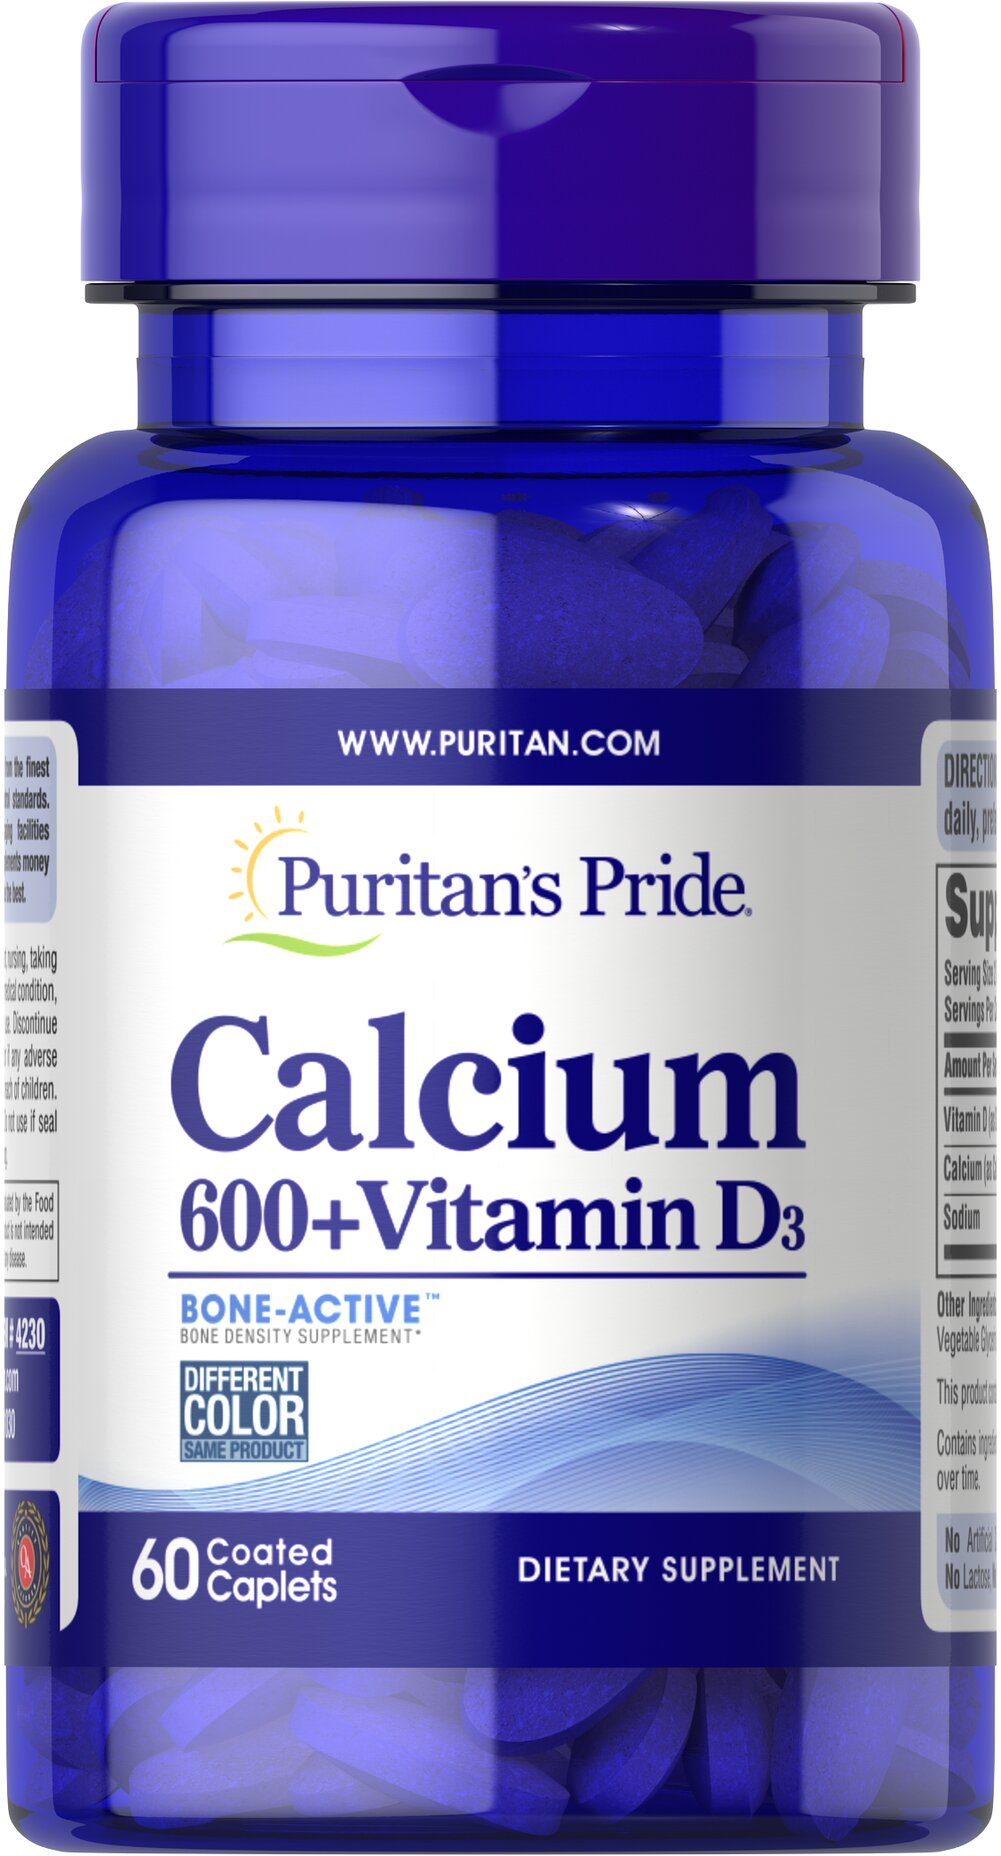 Calcium Carbonate 600 mg + Vitamin D 250 IU <p>Calcium is the primary mineral responsible for strong bones.** The body also uses Calcium for proper muscle contraction and nerve function.**  Just two tablets of our High Potency Calcium 600 + Vitamin D give you the protection of 120% of the Daily Value for Calcium. Each tablet contains 600 mg Calcium and 125 I.U. Vitamin D. Adults can take one or two tablets daily.</p> 60 Tablets 600 mg $5.99